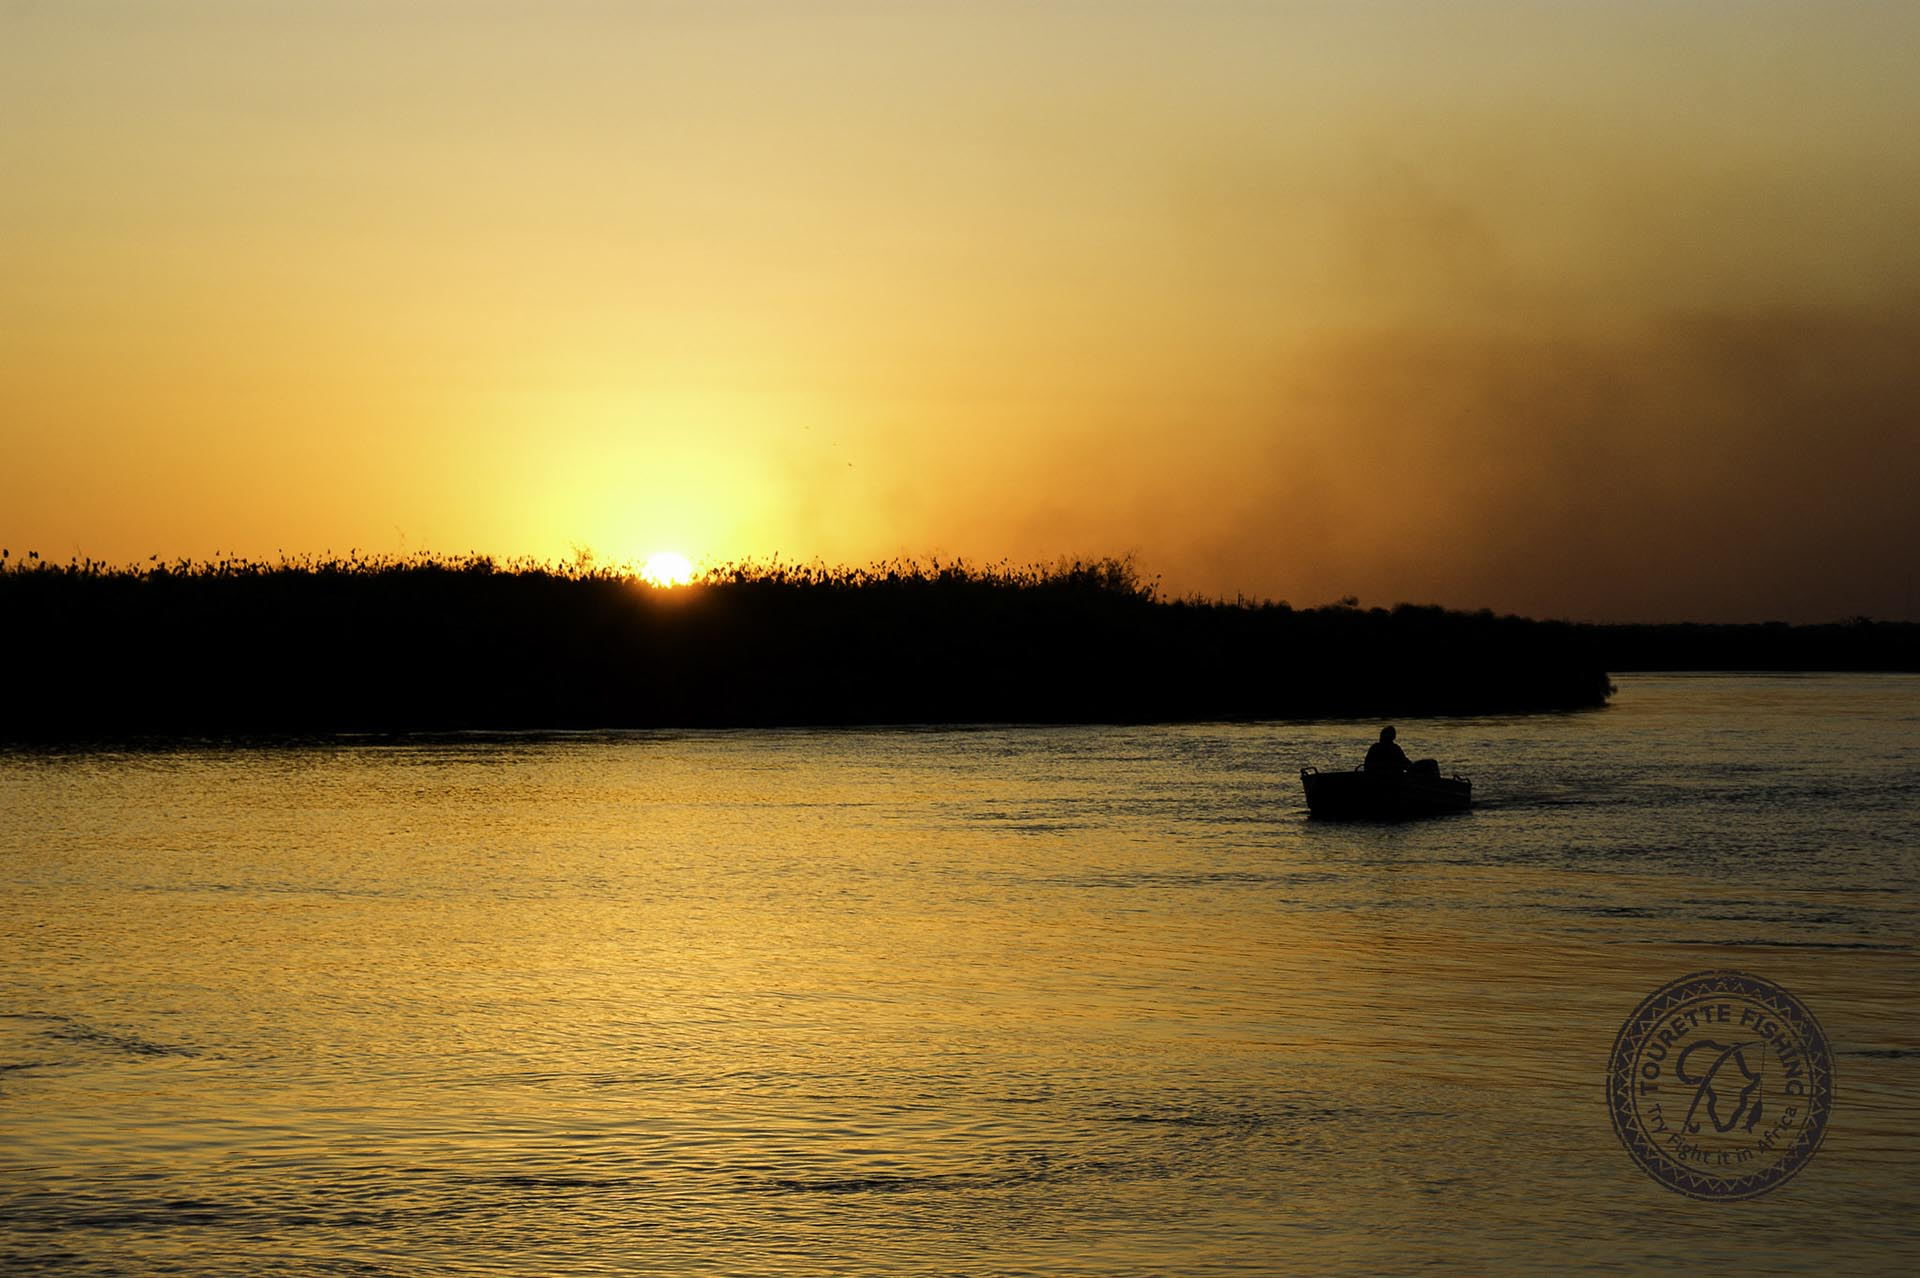 okavango-tigerfish-week-7-20-25-oct-2014-cast-to-conserve-explore-experience-protect-tourette-fishing-blog-Leslie-Thiart-Okavango-African-sunsets